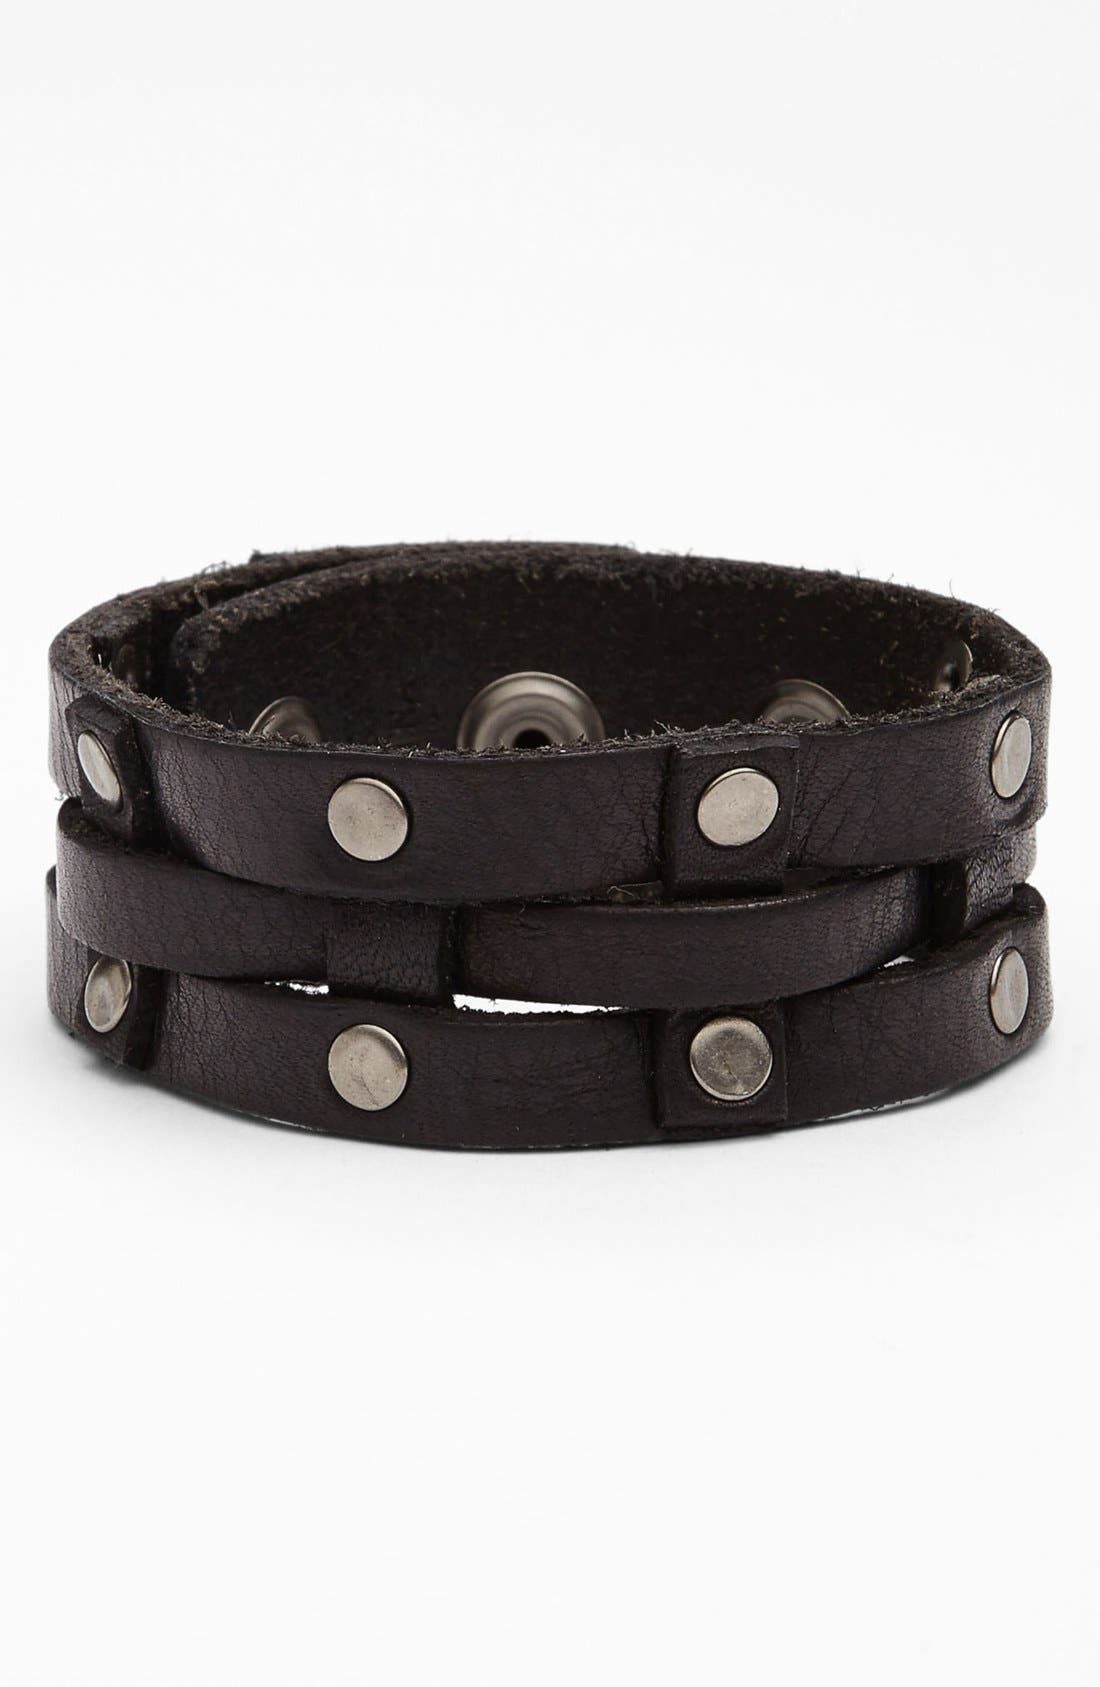 Alternate Image 1 Selected - Will Leather Goods Leather Cuff Bracelet